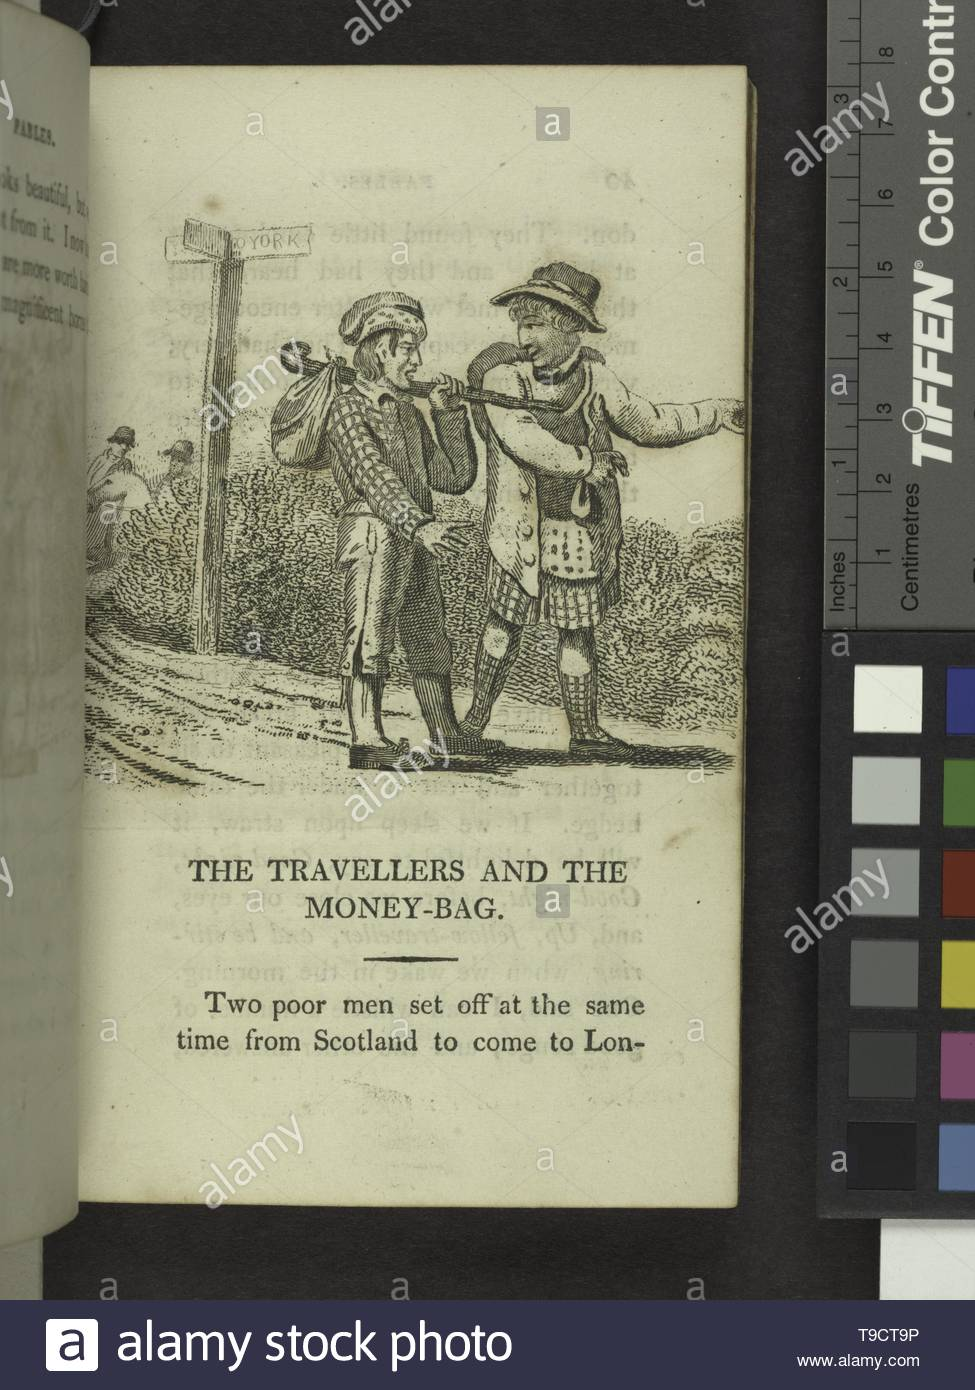 Godwin,William,1756-1836-The travellers and the money-bag - Stock Image